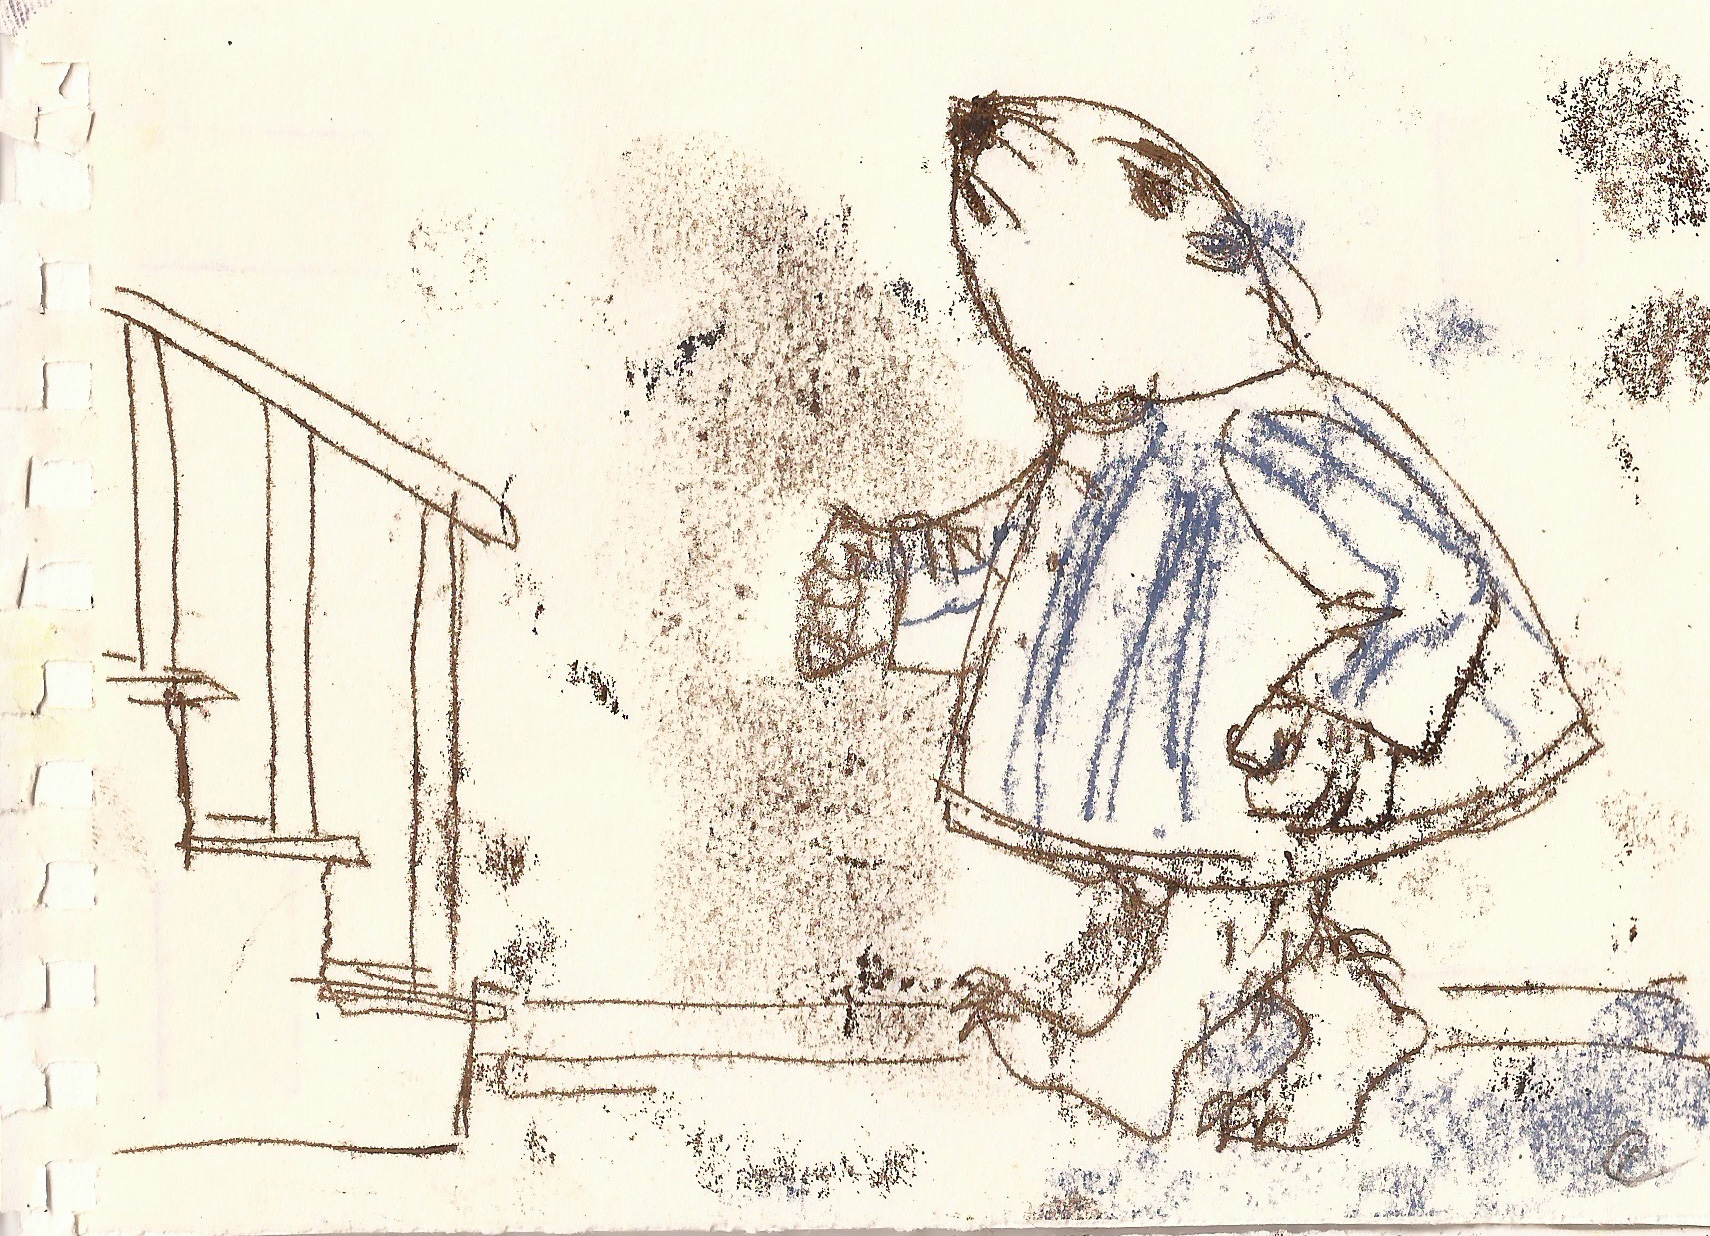 drawing of a rodent walking towards stairs